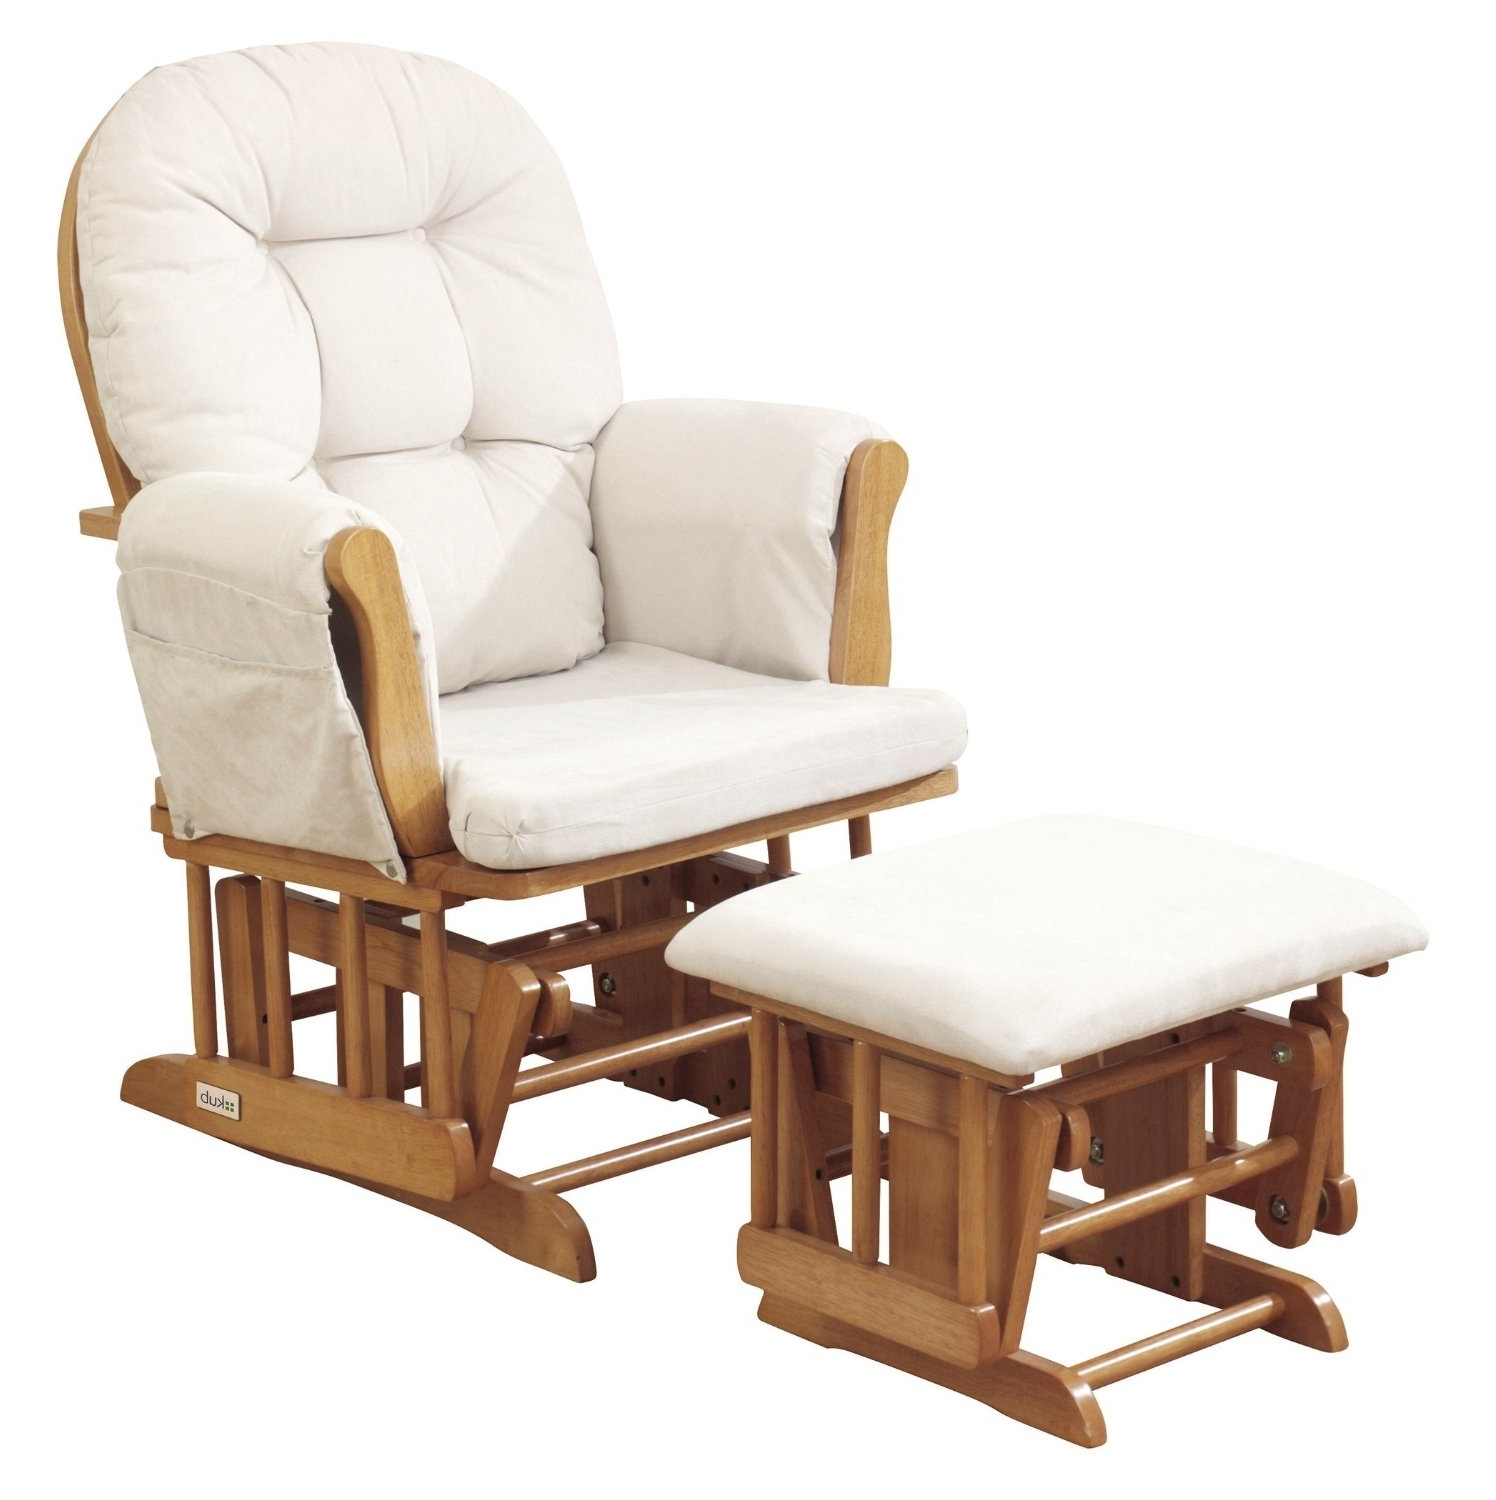 Ovalasallista In Preferred Rocking Chairs With Ottoman (View 8 of 15)